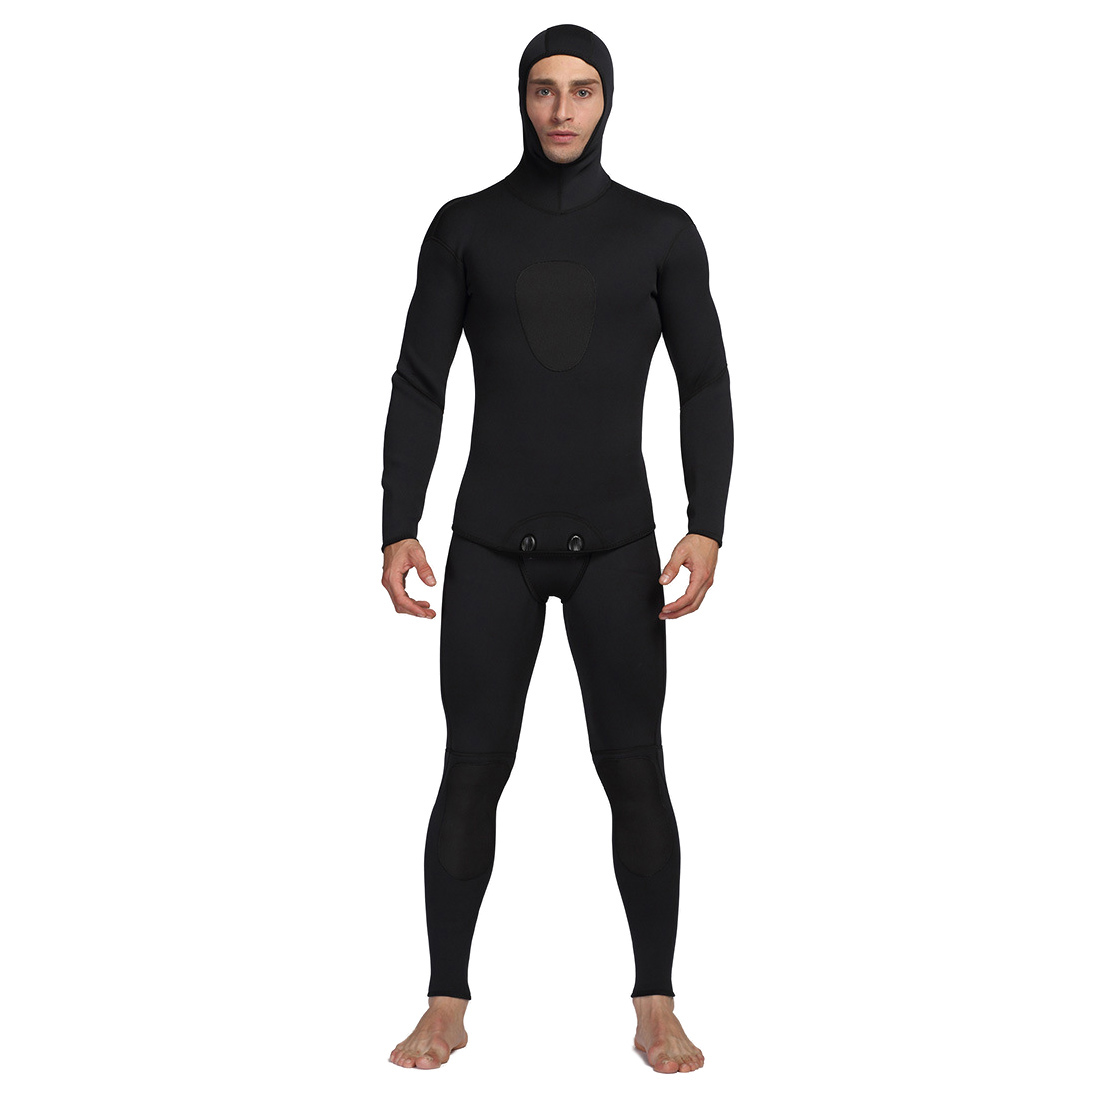 DSGS 3mm Neoprene Diving Suit For Men Swimming Surfing Jump Suit Surfacing Warm Wetsuit Suspender Trousers And Jacket 2pcs/setDSGS 3mm Neoprene Diving Suit For Men Swimming Surfing Jump Suit Surfacing Warm Wetsuit Suspender Trousers And Jacket 2pcs/set